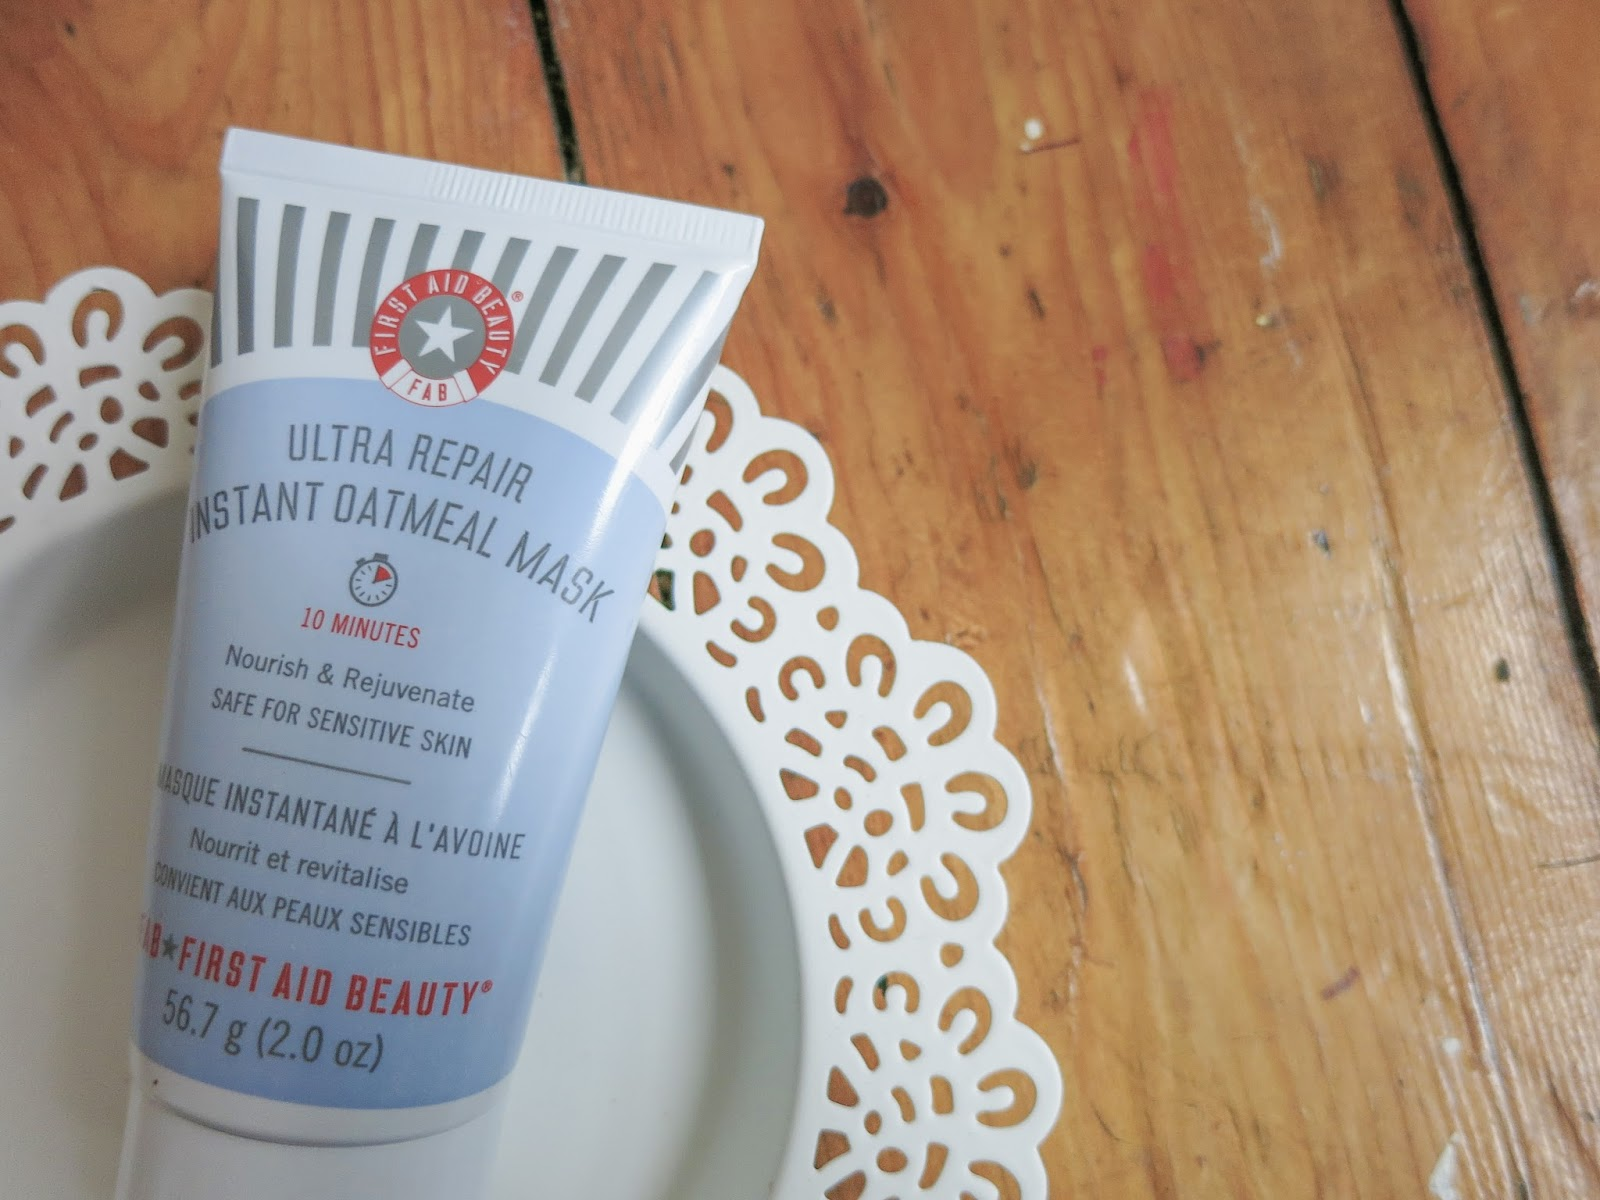 First Aid Beauty Ultra Repair Oatmeal Mask